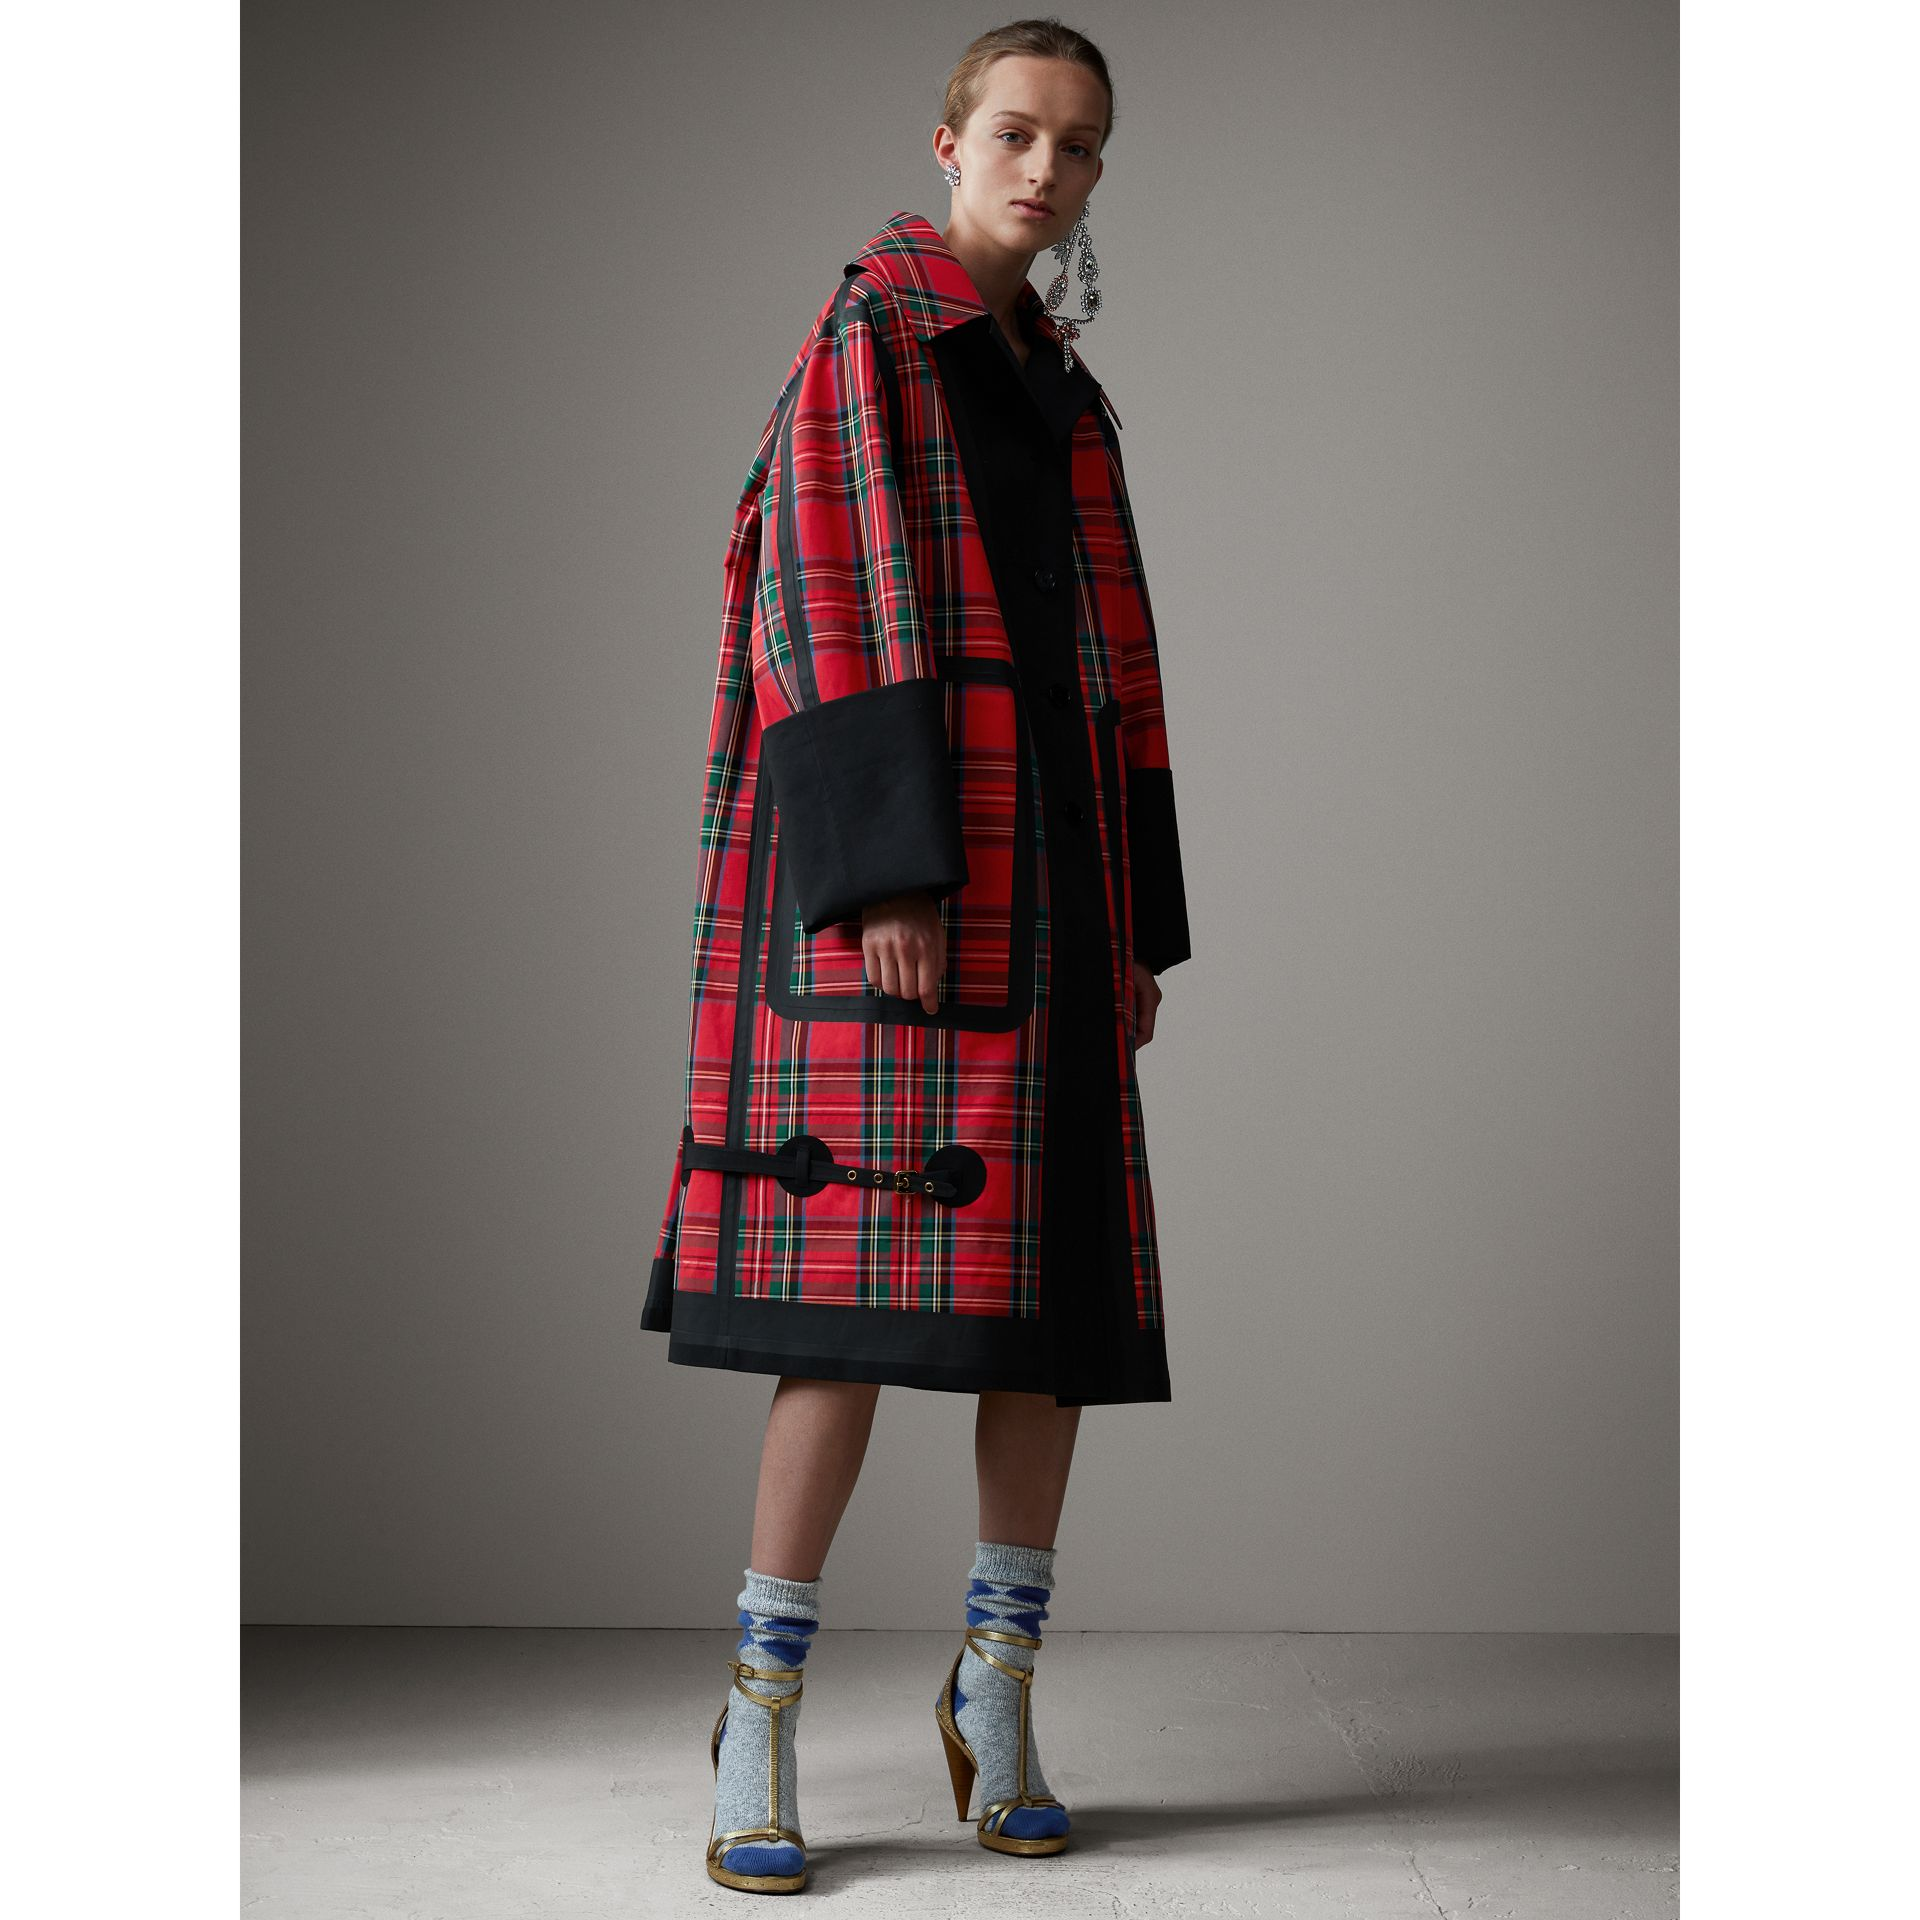 Tartan Bonded Cotton Seam-sealed Oversized Car Coat in Black - Women | Burberry - gallery image 5